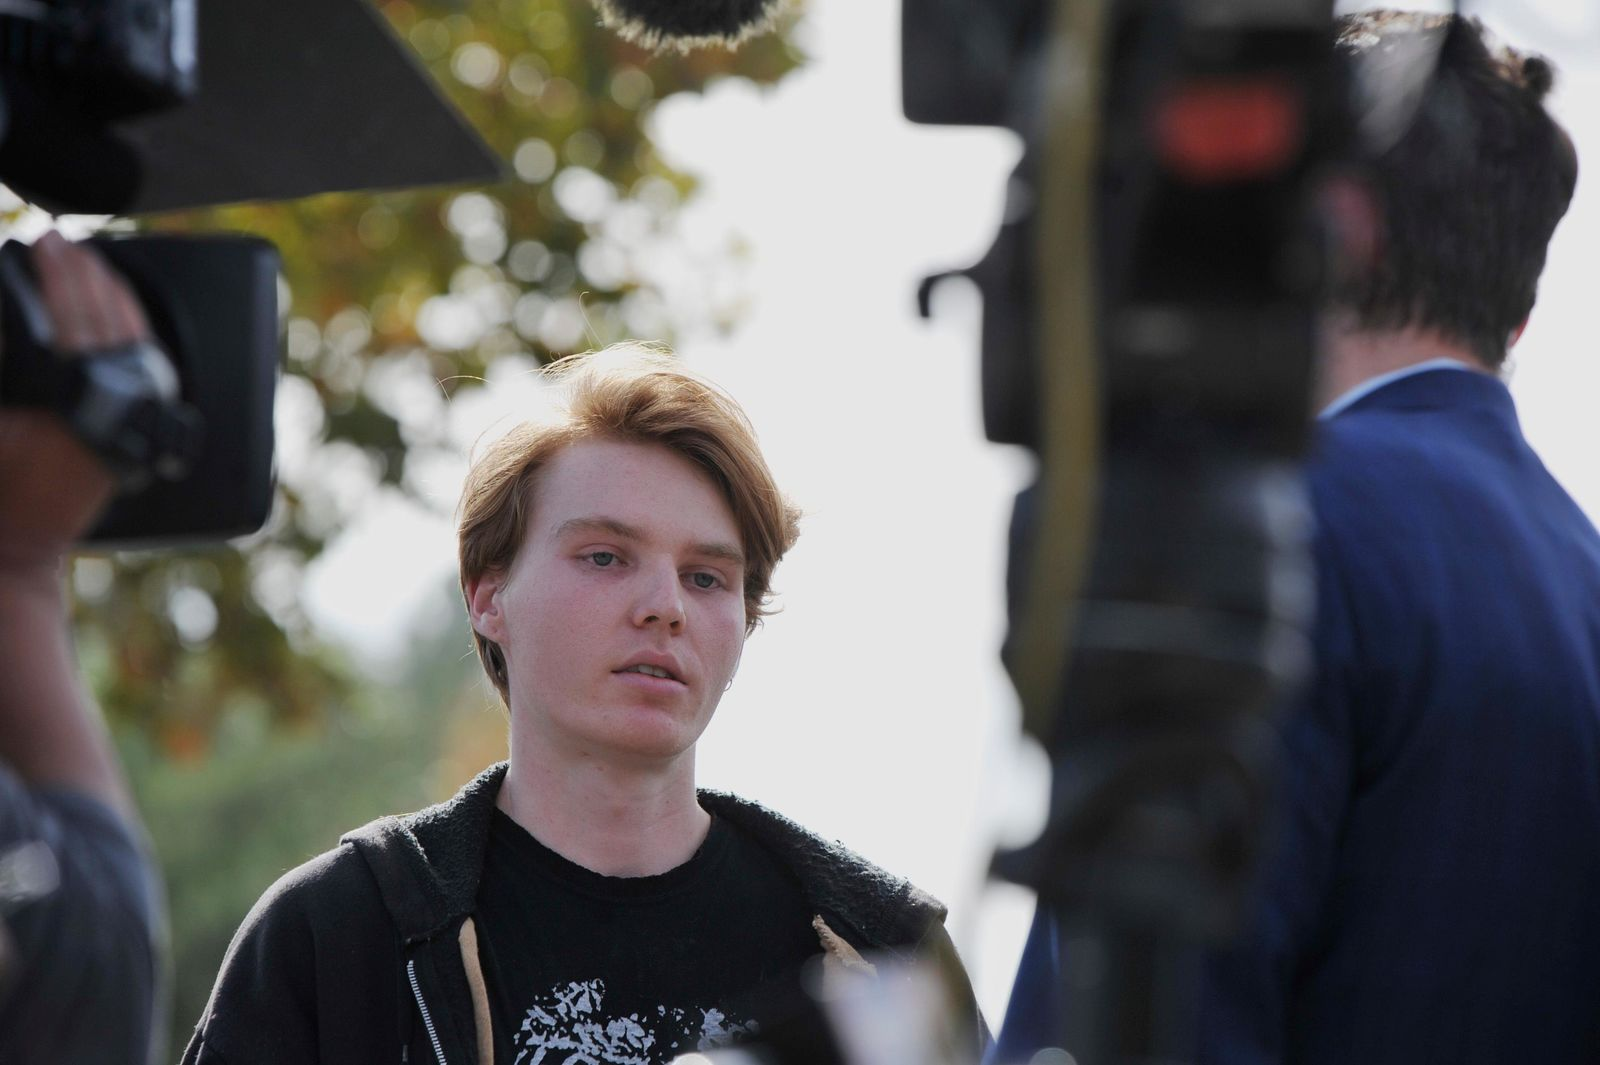 TV news reporters interview Ryan McCracken who lived next-door to the gunman who opened fire at Saugus High School on Thursday, Nov. 14, 2019 in Santa Clarita, Calif. (AP Photo by Christian Monterrosa)